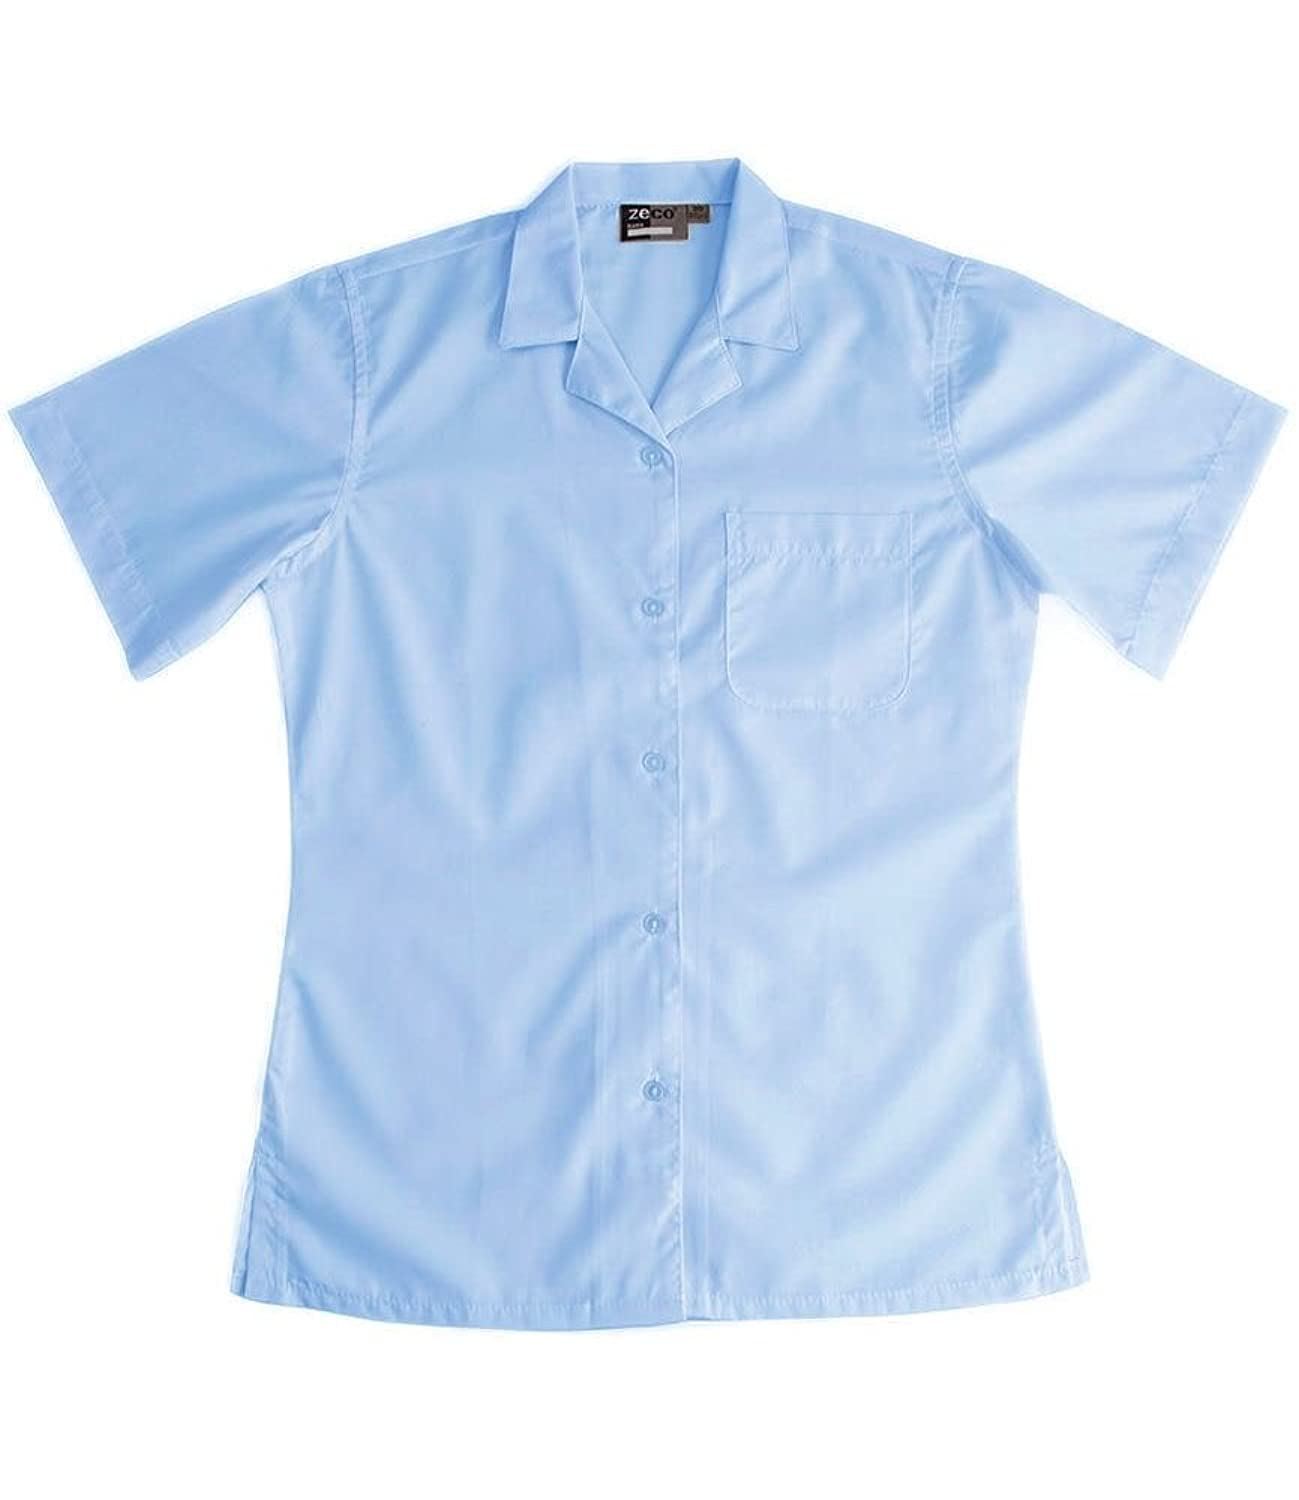 Quality Girls Generous Fit School Blouses. Revere Collar, White or Blue.  Long,